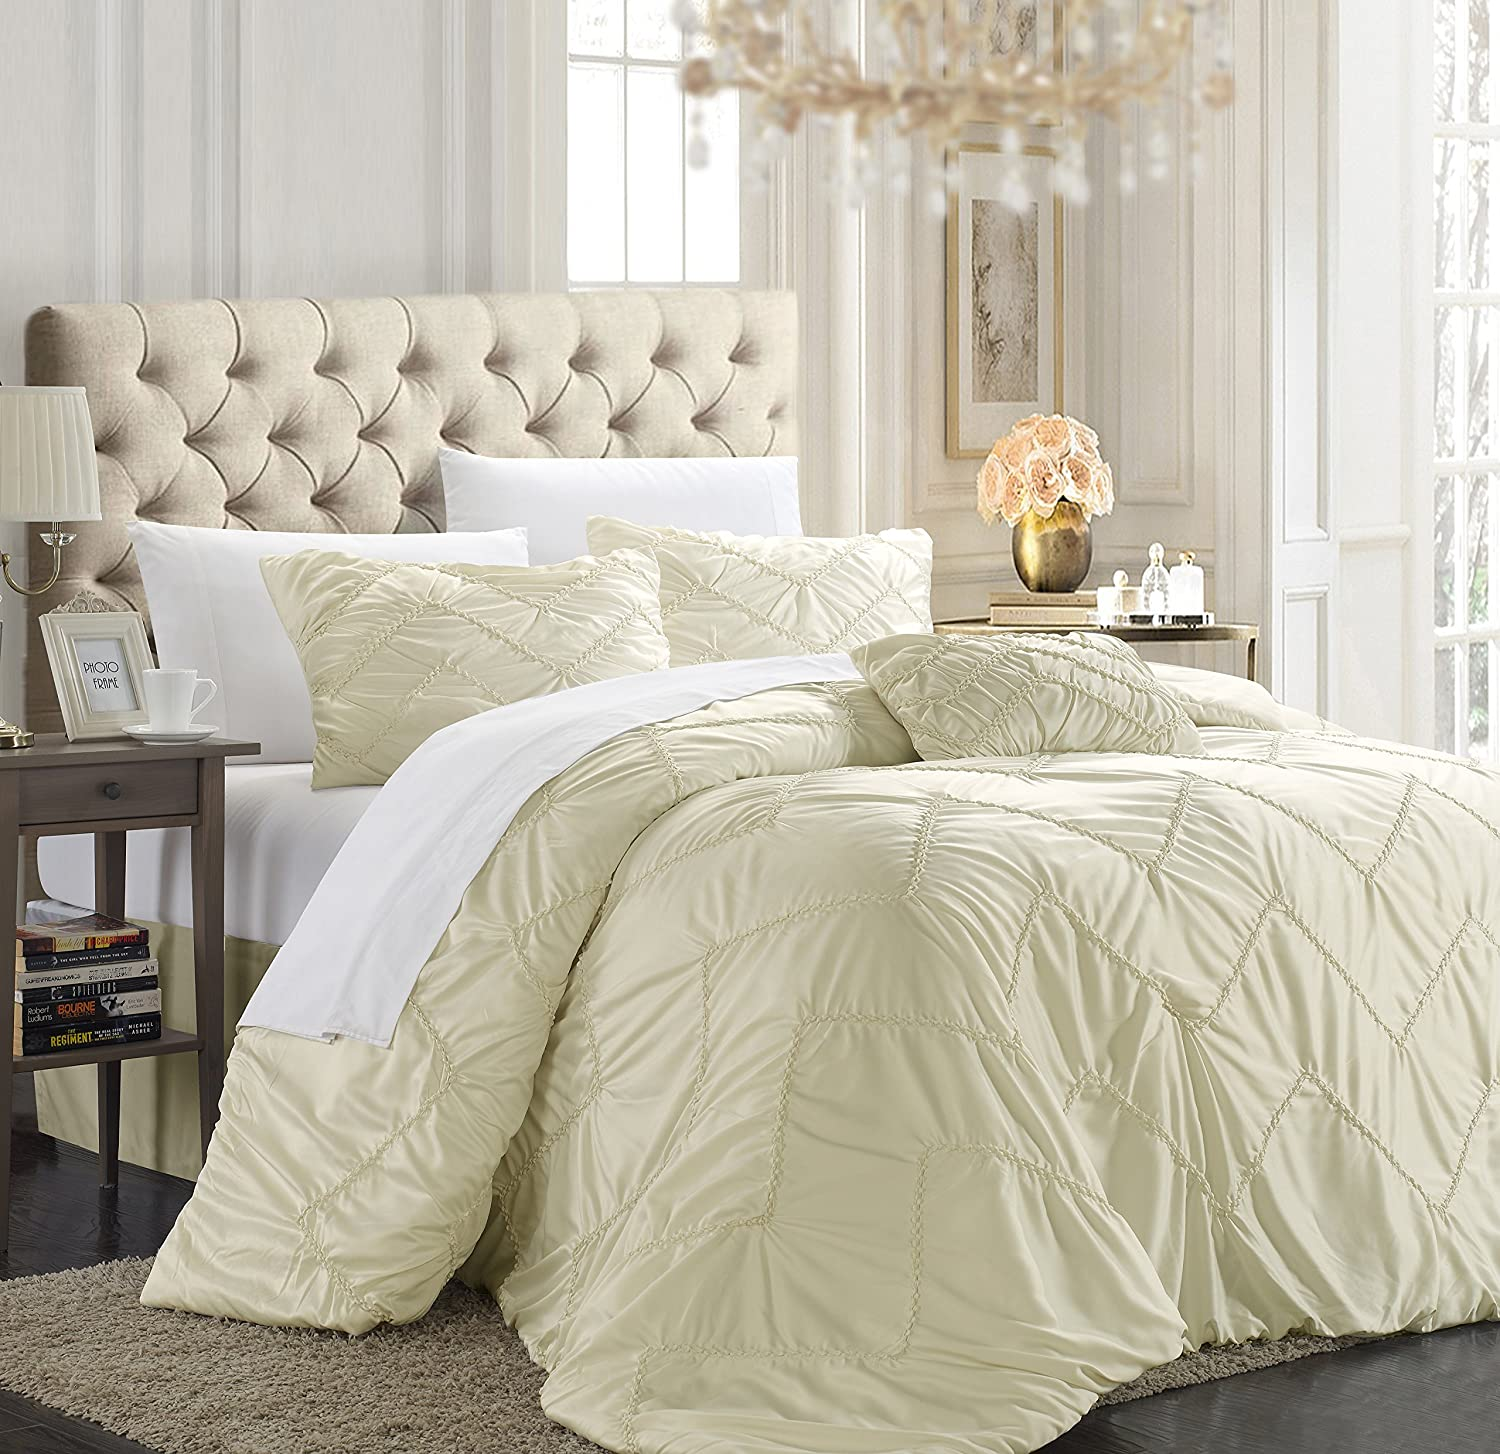 overstock free bedding piece duchess bdcc product today shipping bath comforter cdu sets set